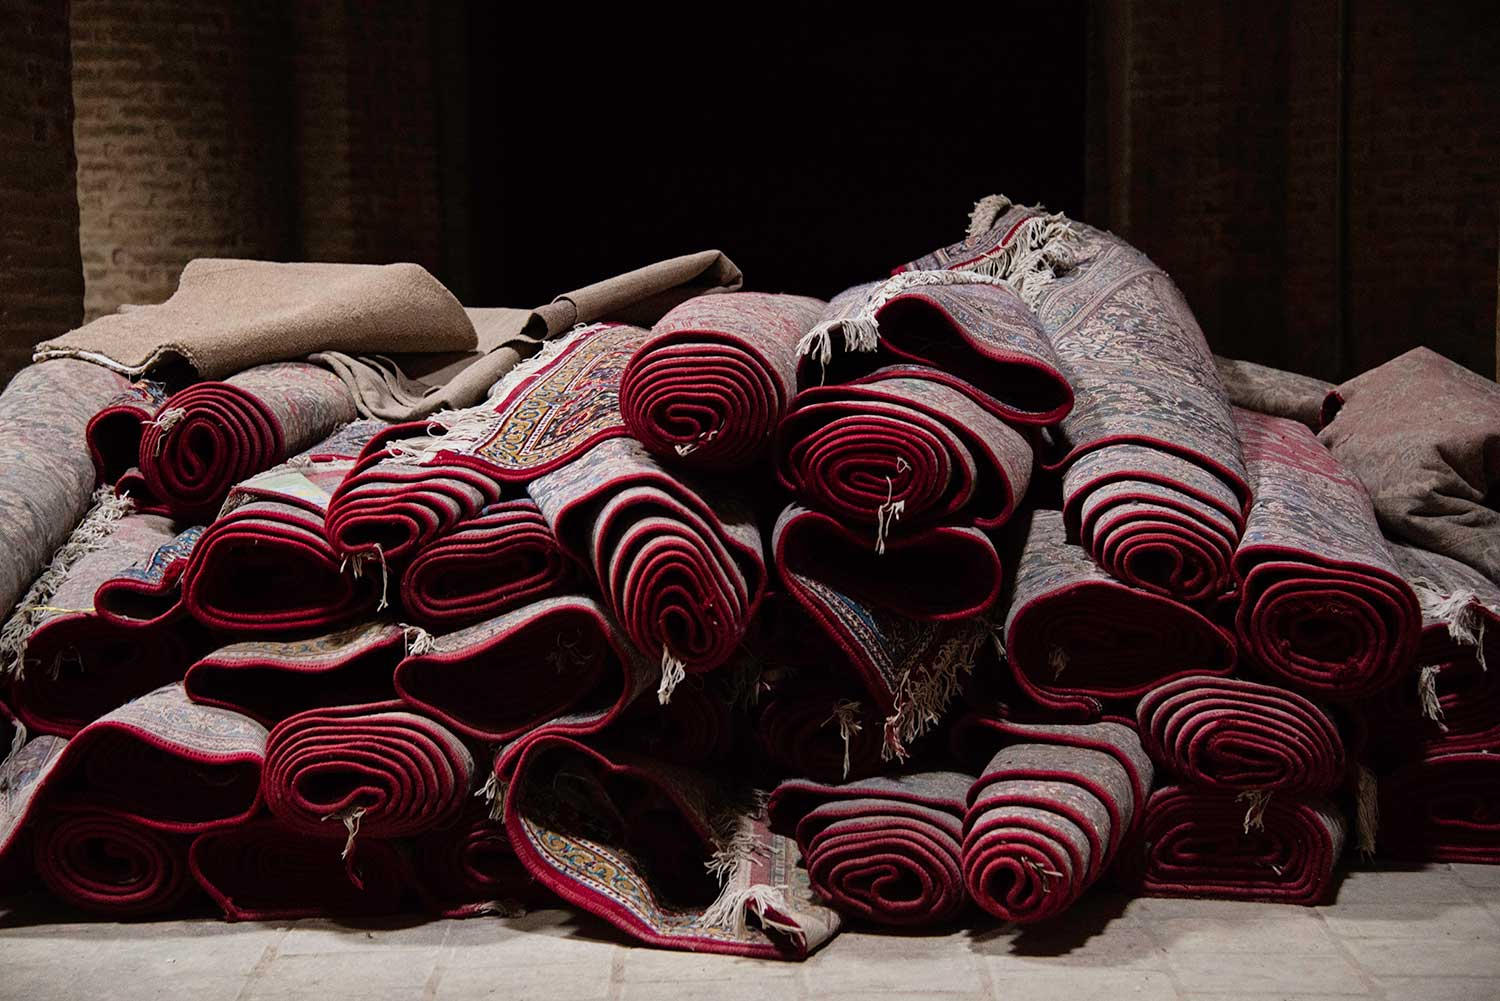 Pile of Rolled Rugs